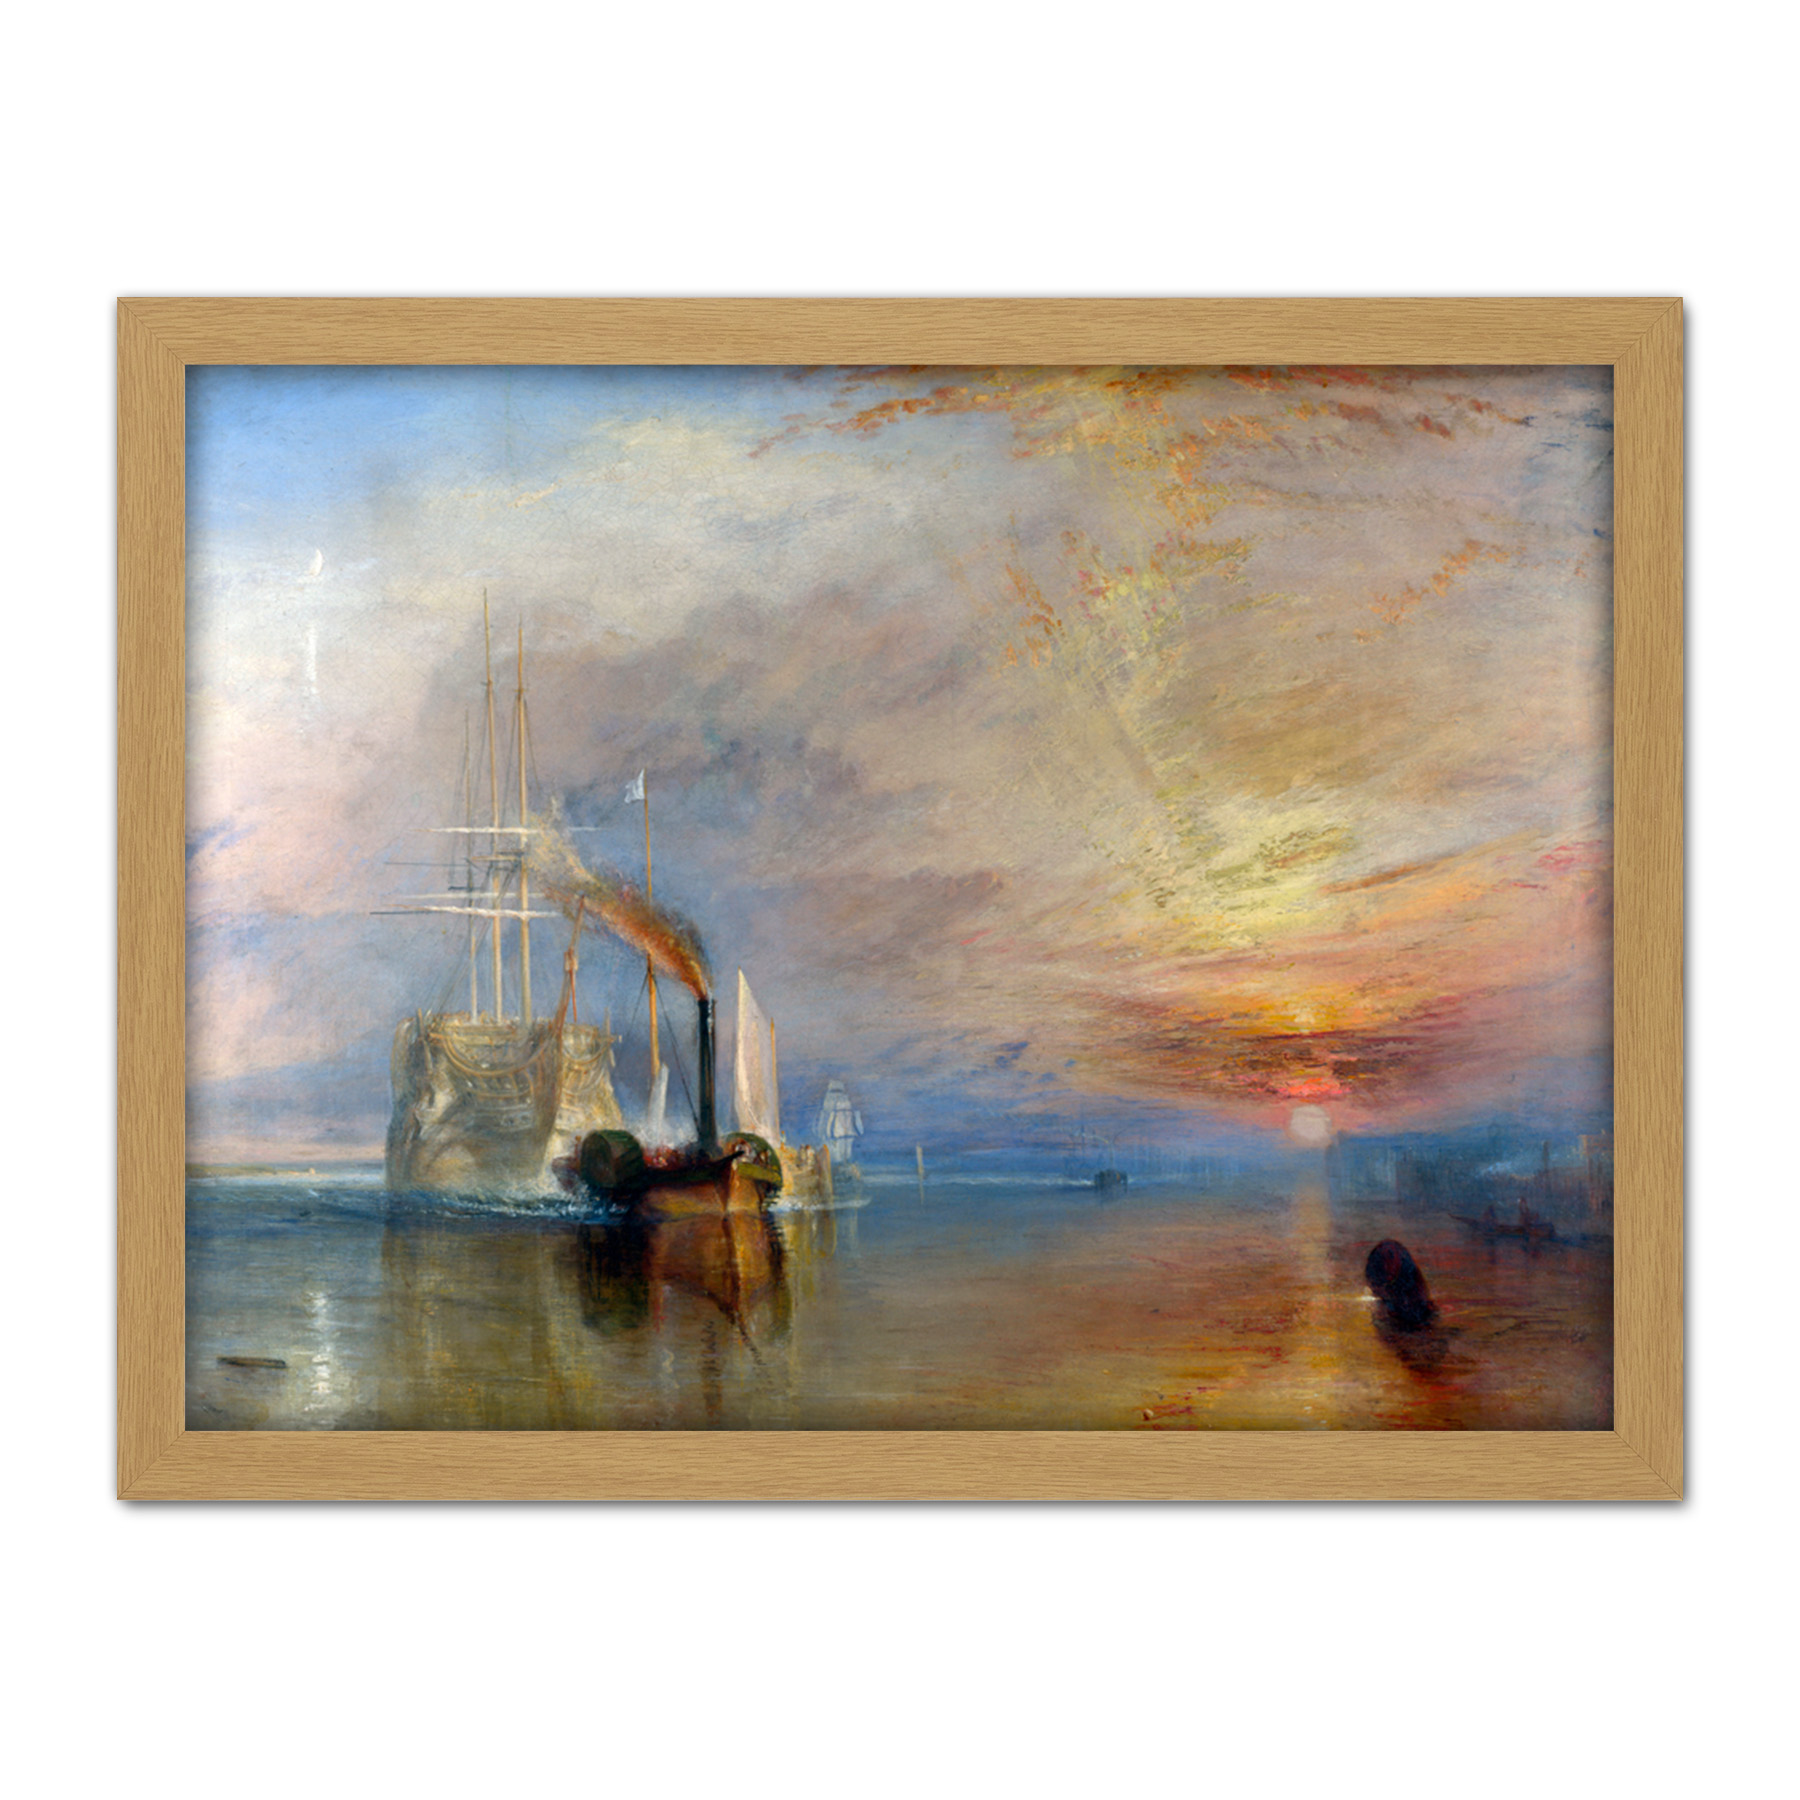 Turner-The-Fighting-Temeraire-Ship-Painting-Framed-Wall-Art-Print-18X24-In thumbnail 15